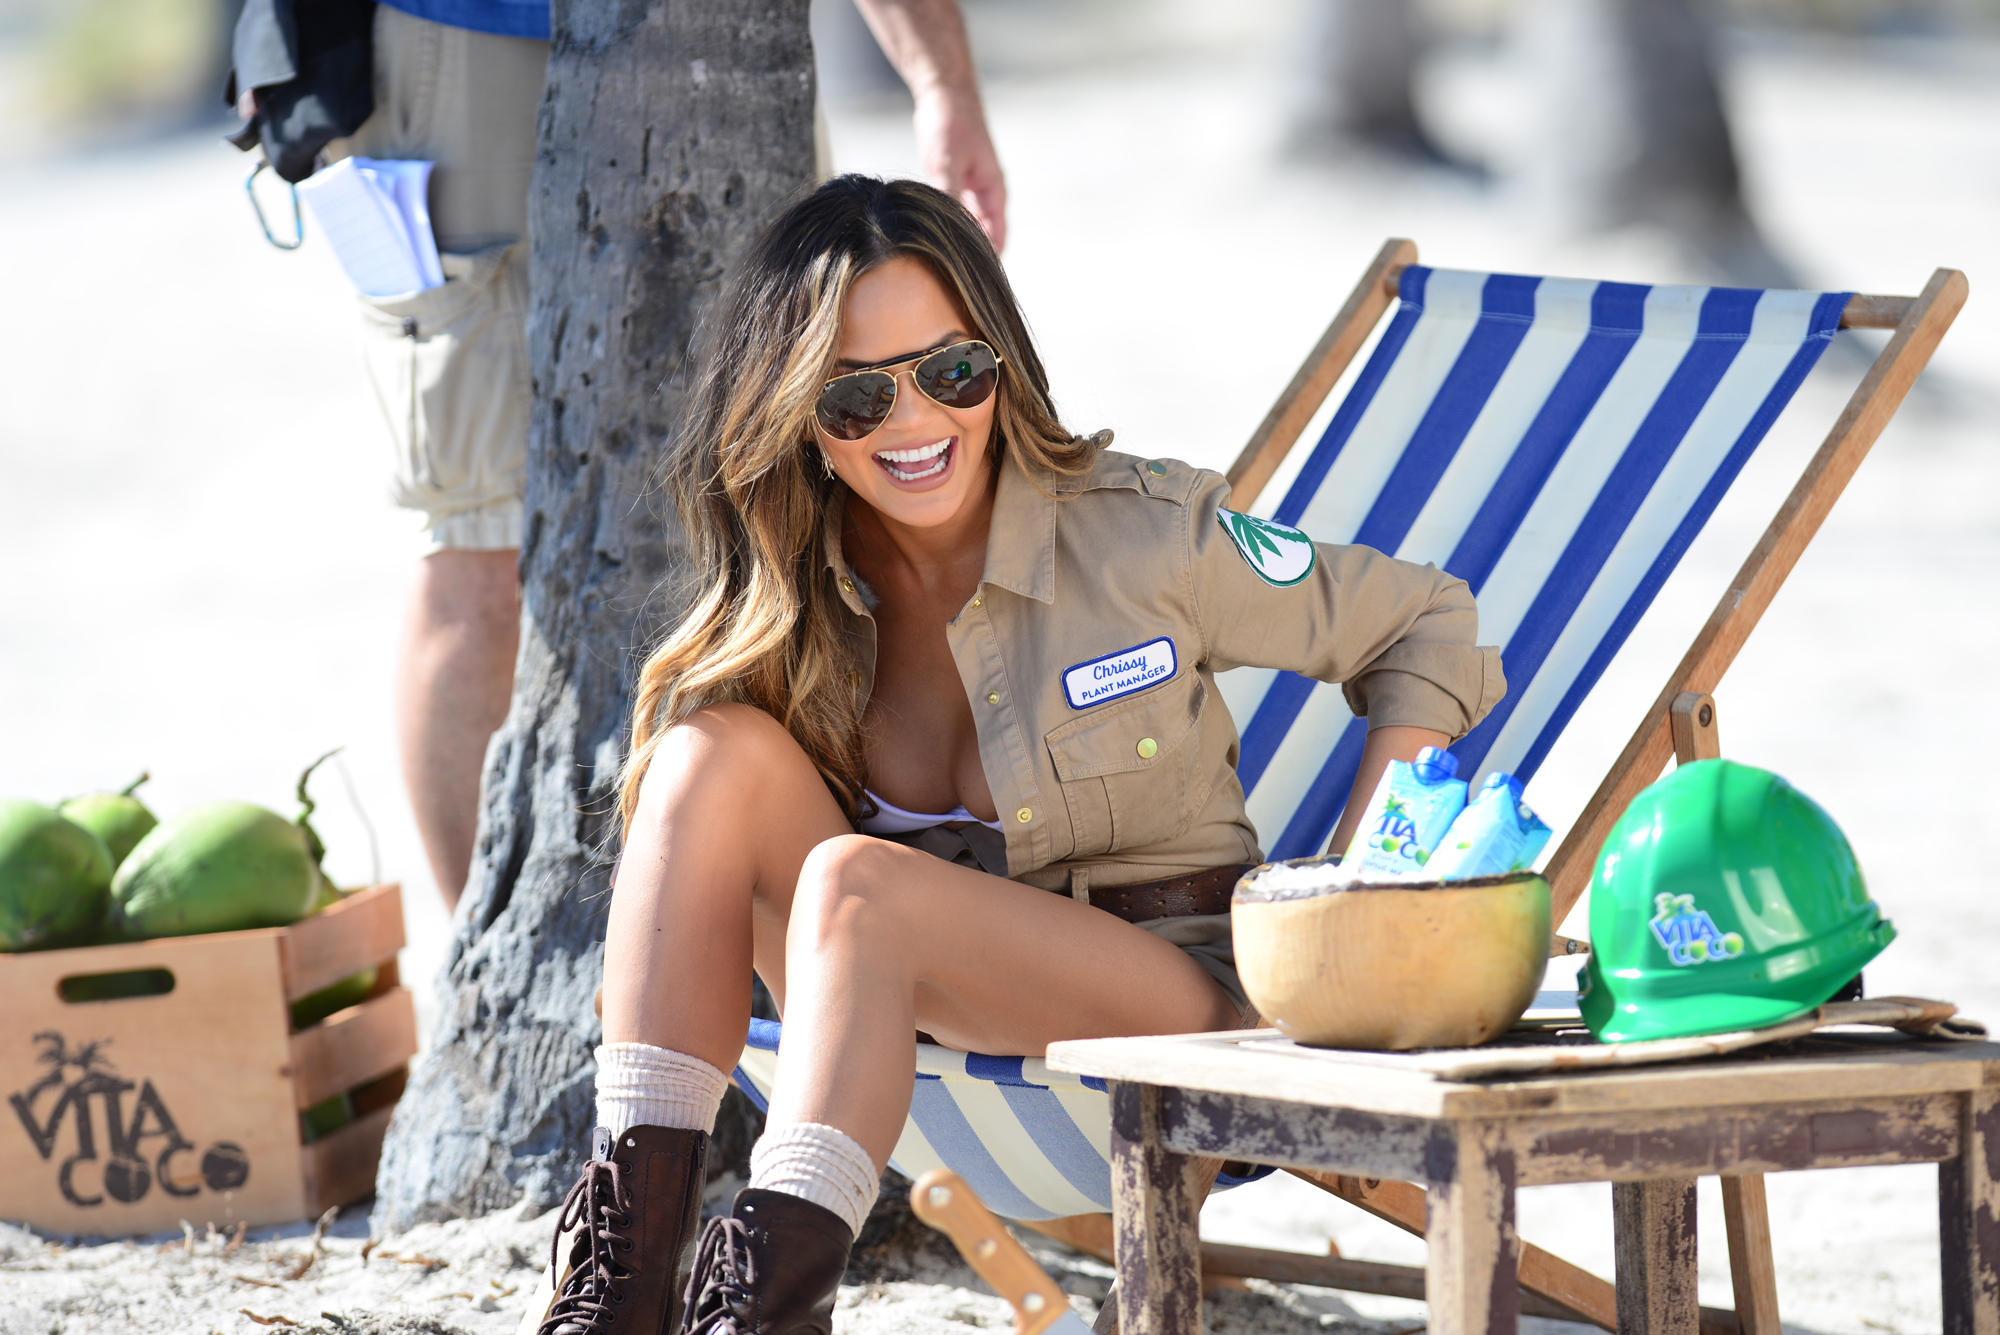 Clone of Chrissy Teigen's Vita Coco Outtakes Are Just as Funny as She Is